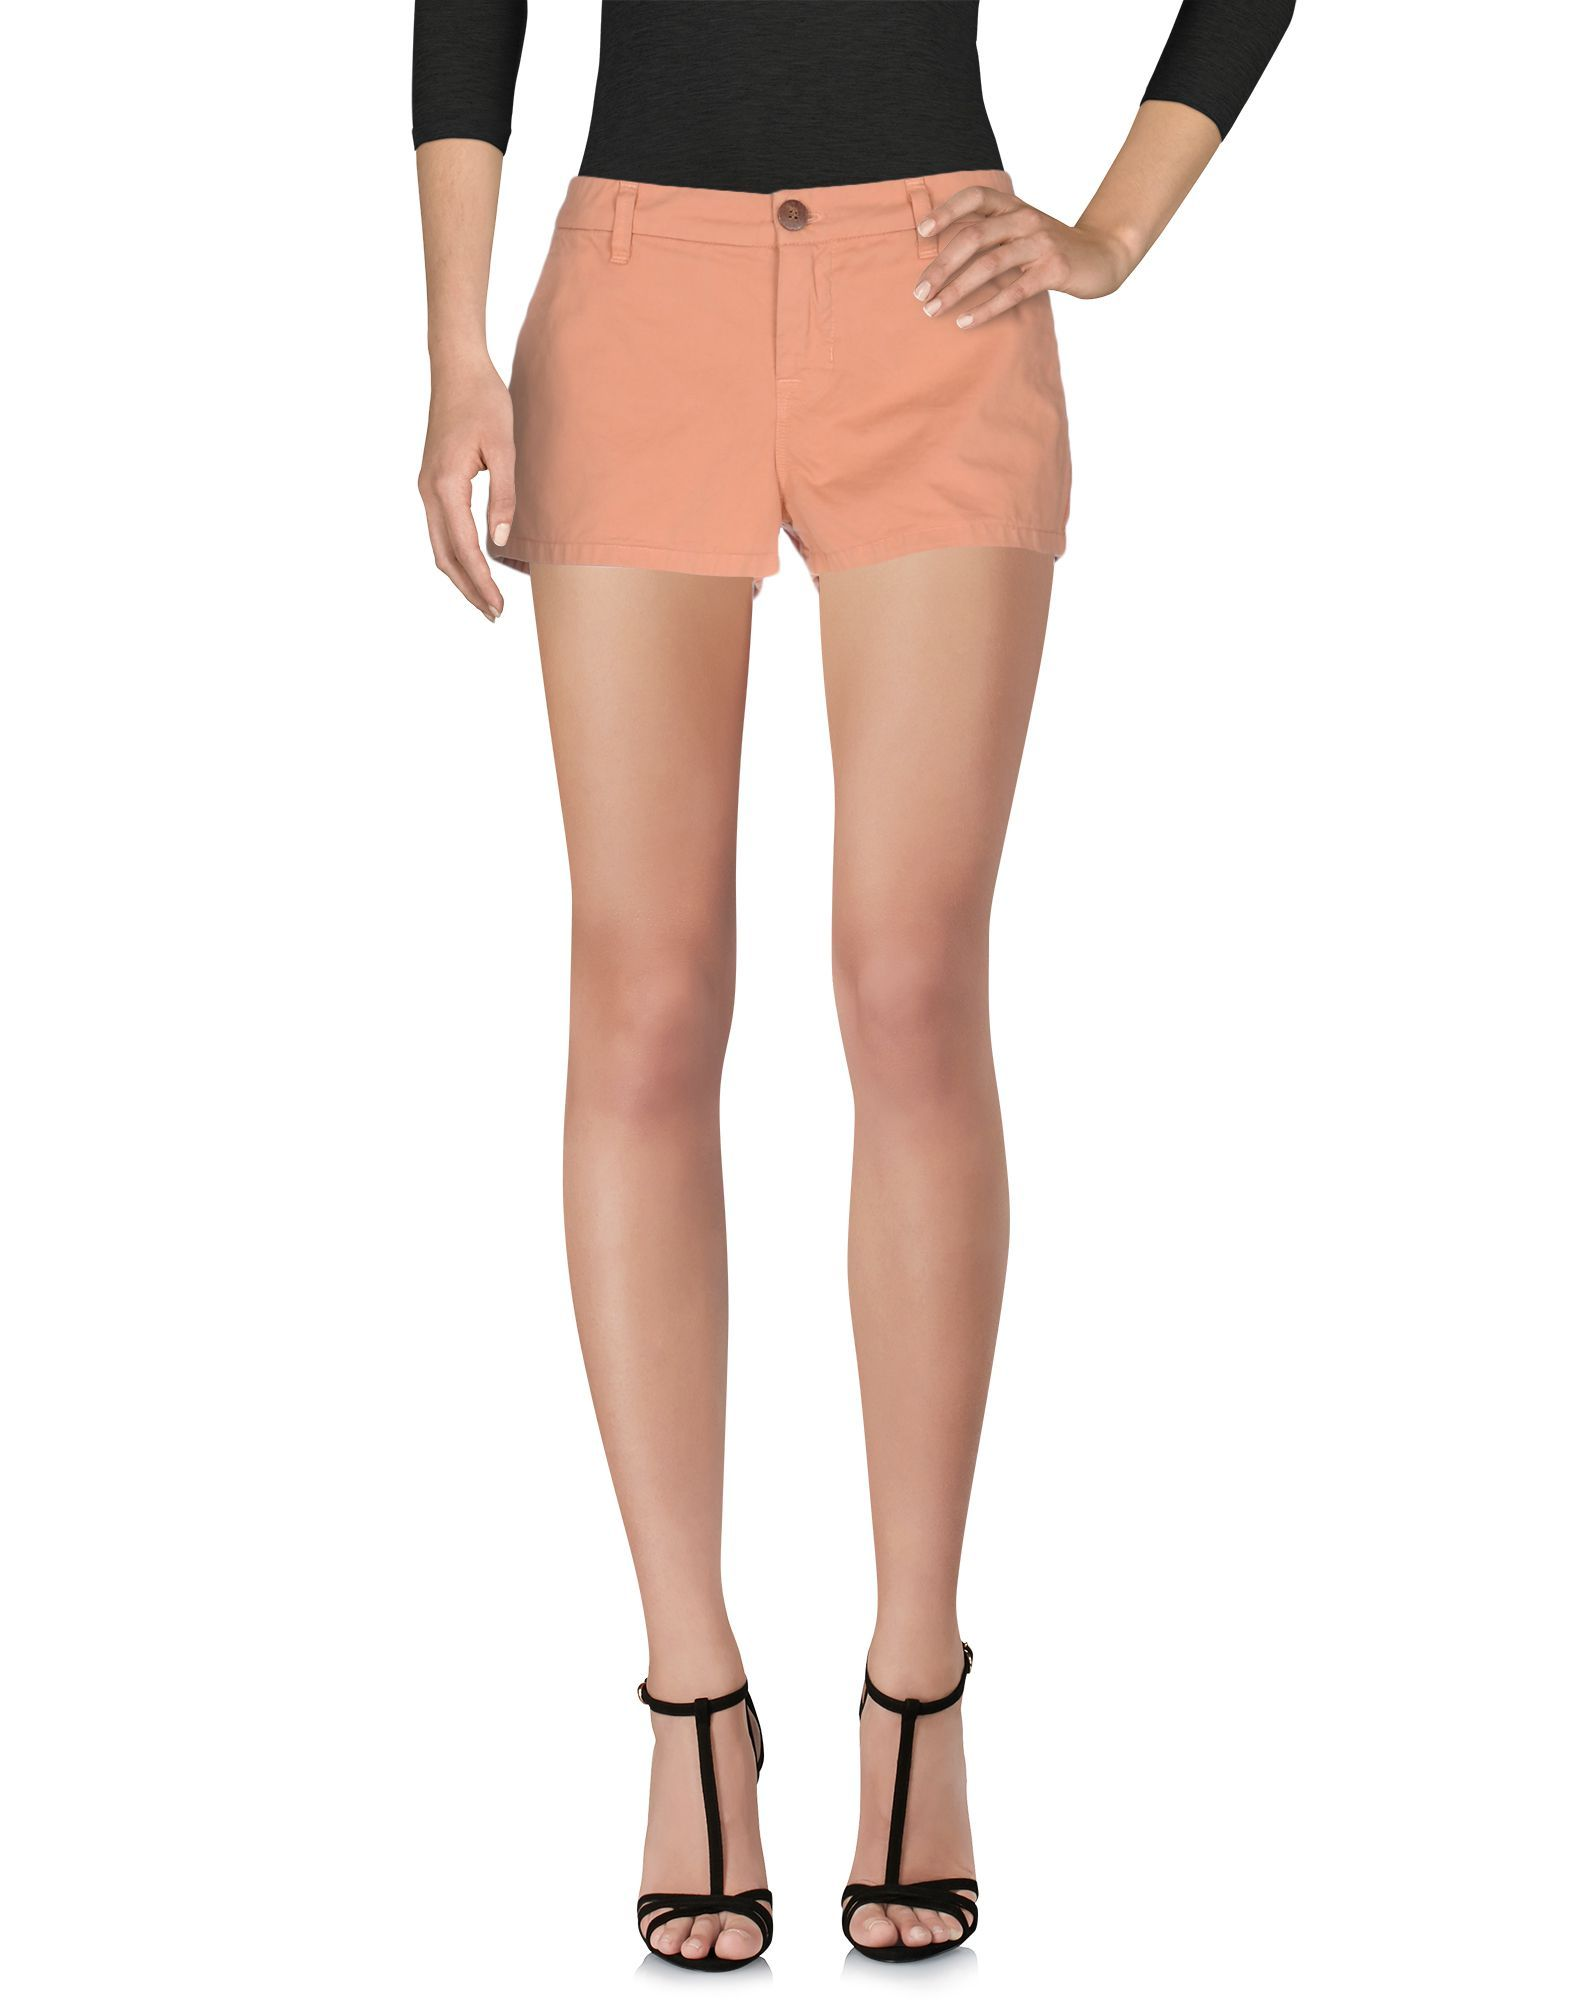 Salmon pink pure cotton twill mid-rise shorts